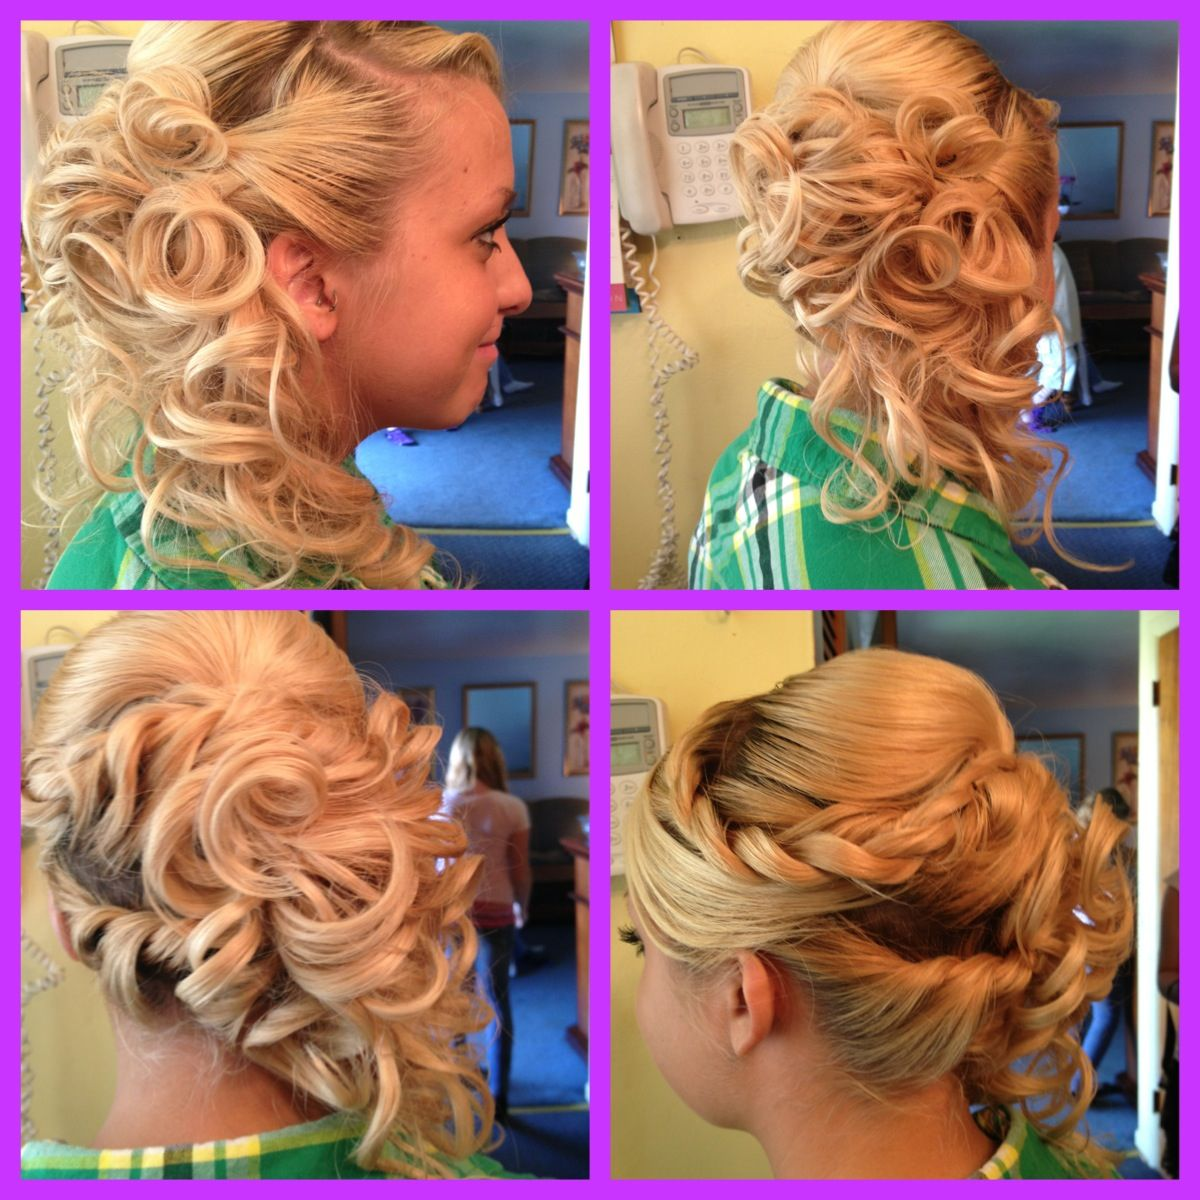 Homecoming prom updo hairstyle longhair blond curls braids